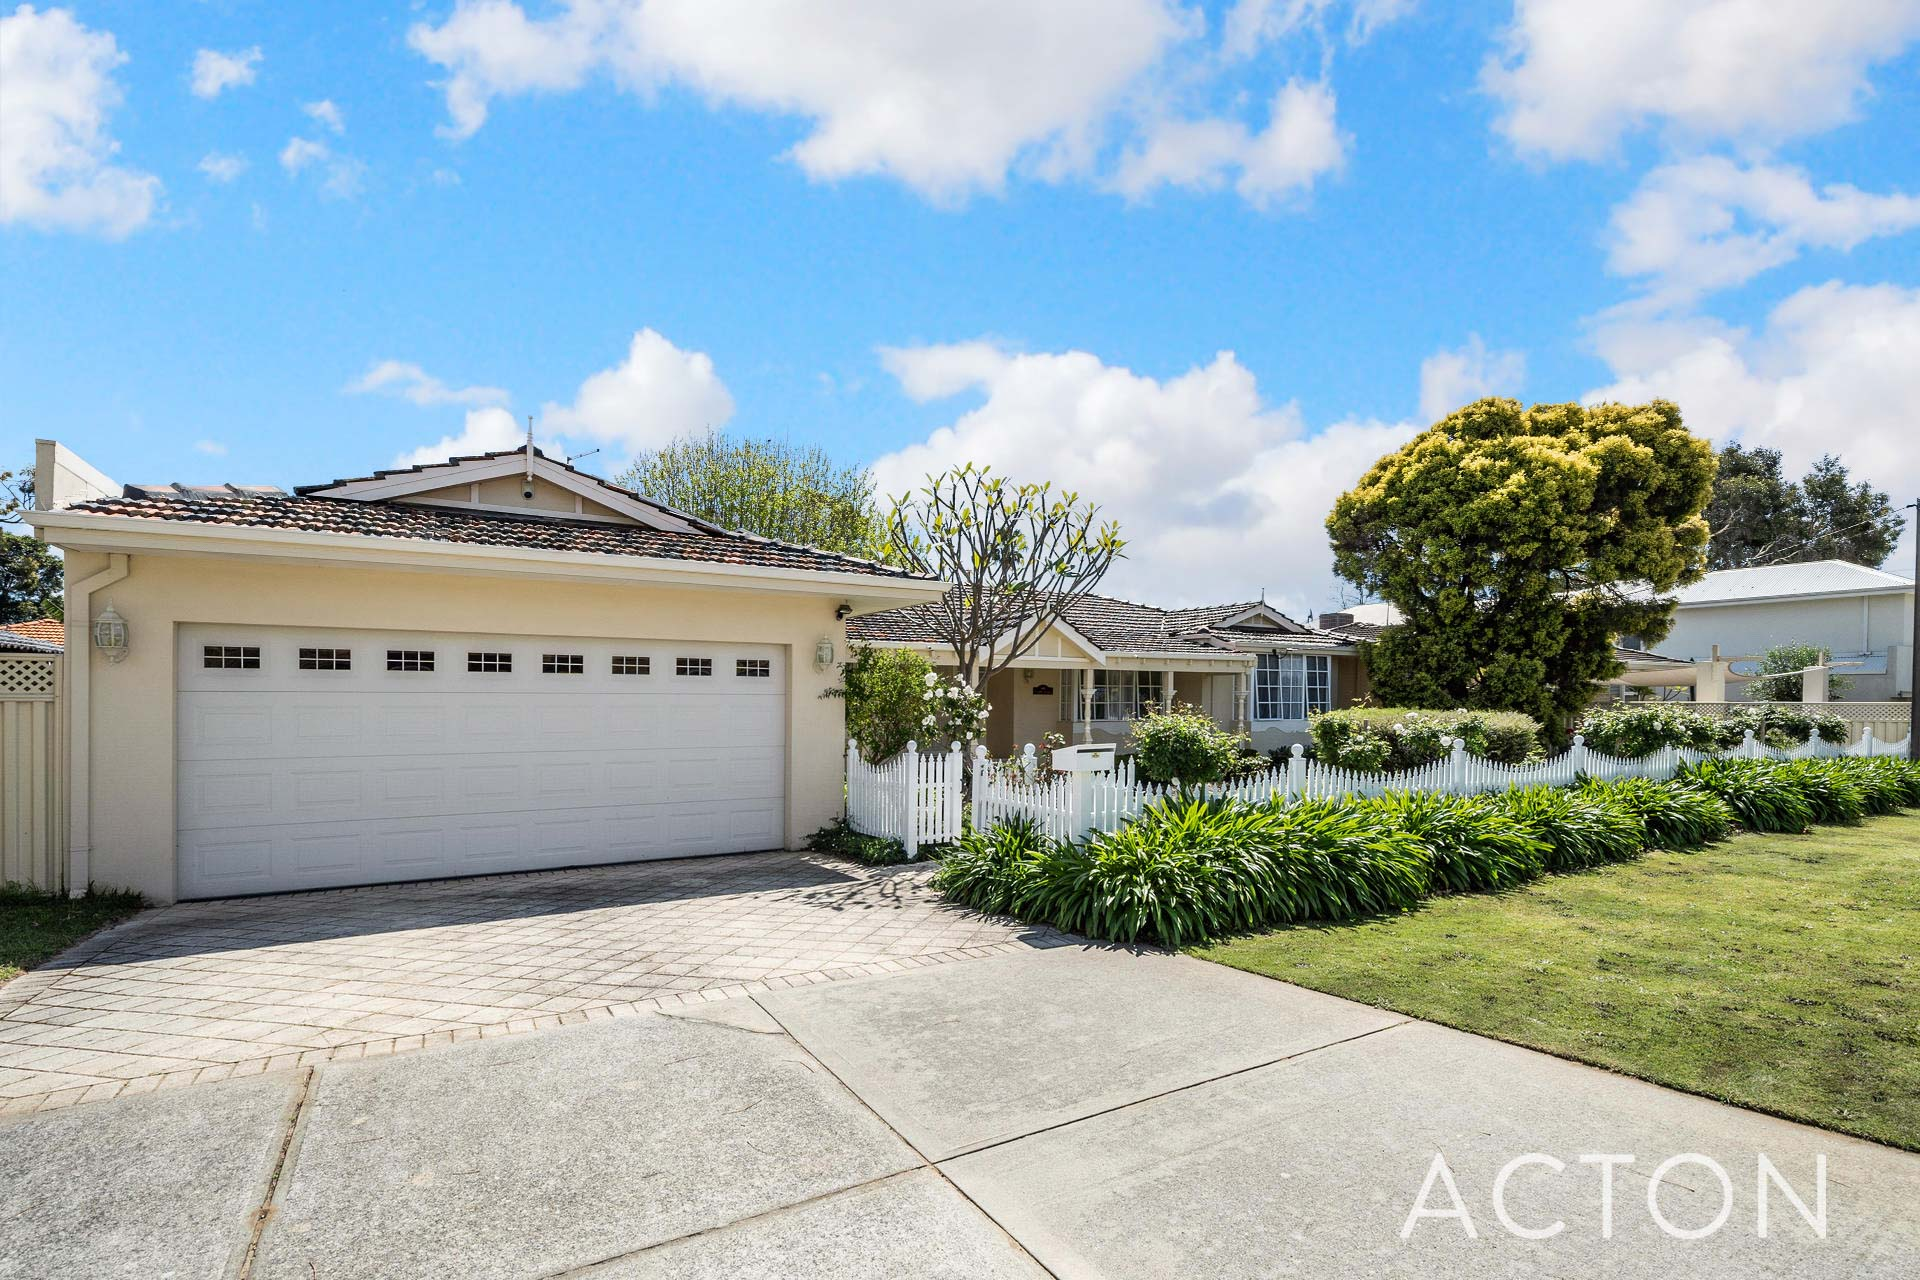 3 Tate Place Kardinya - House For Sale - 23275318 - ACTON Projects